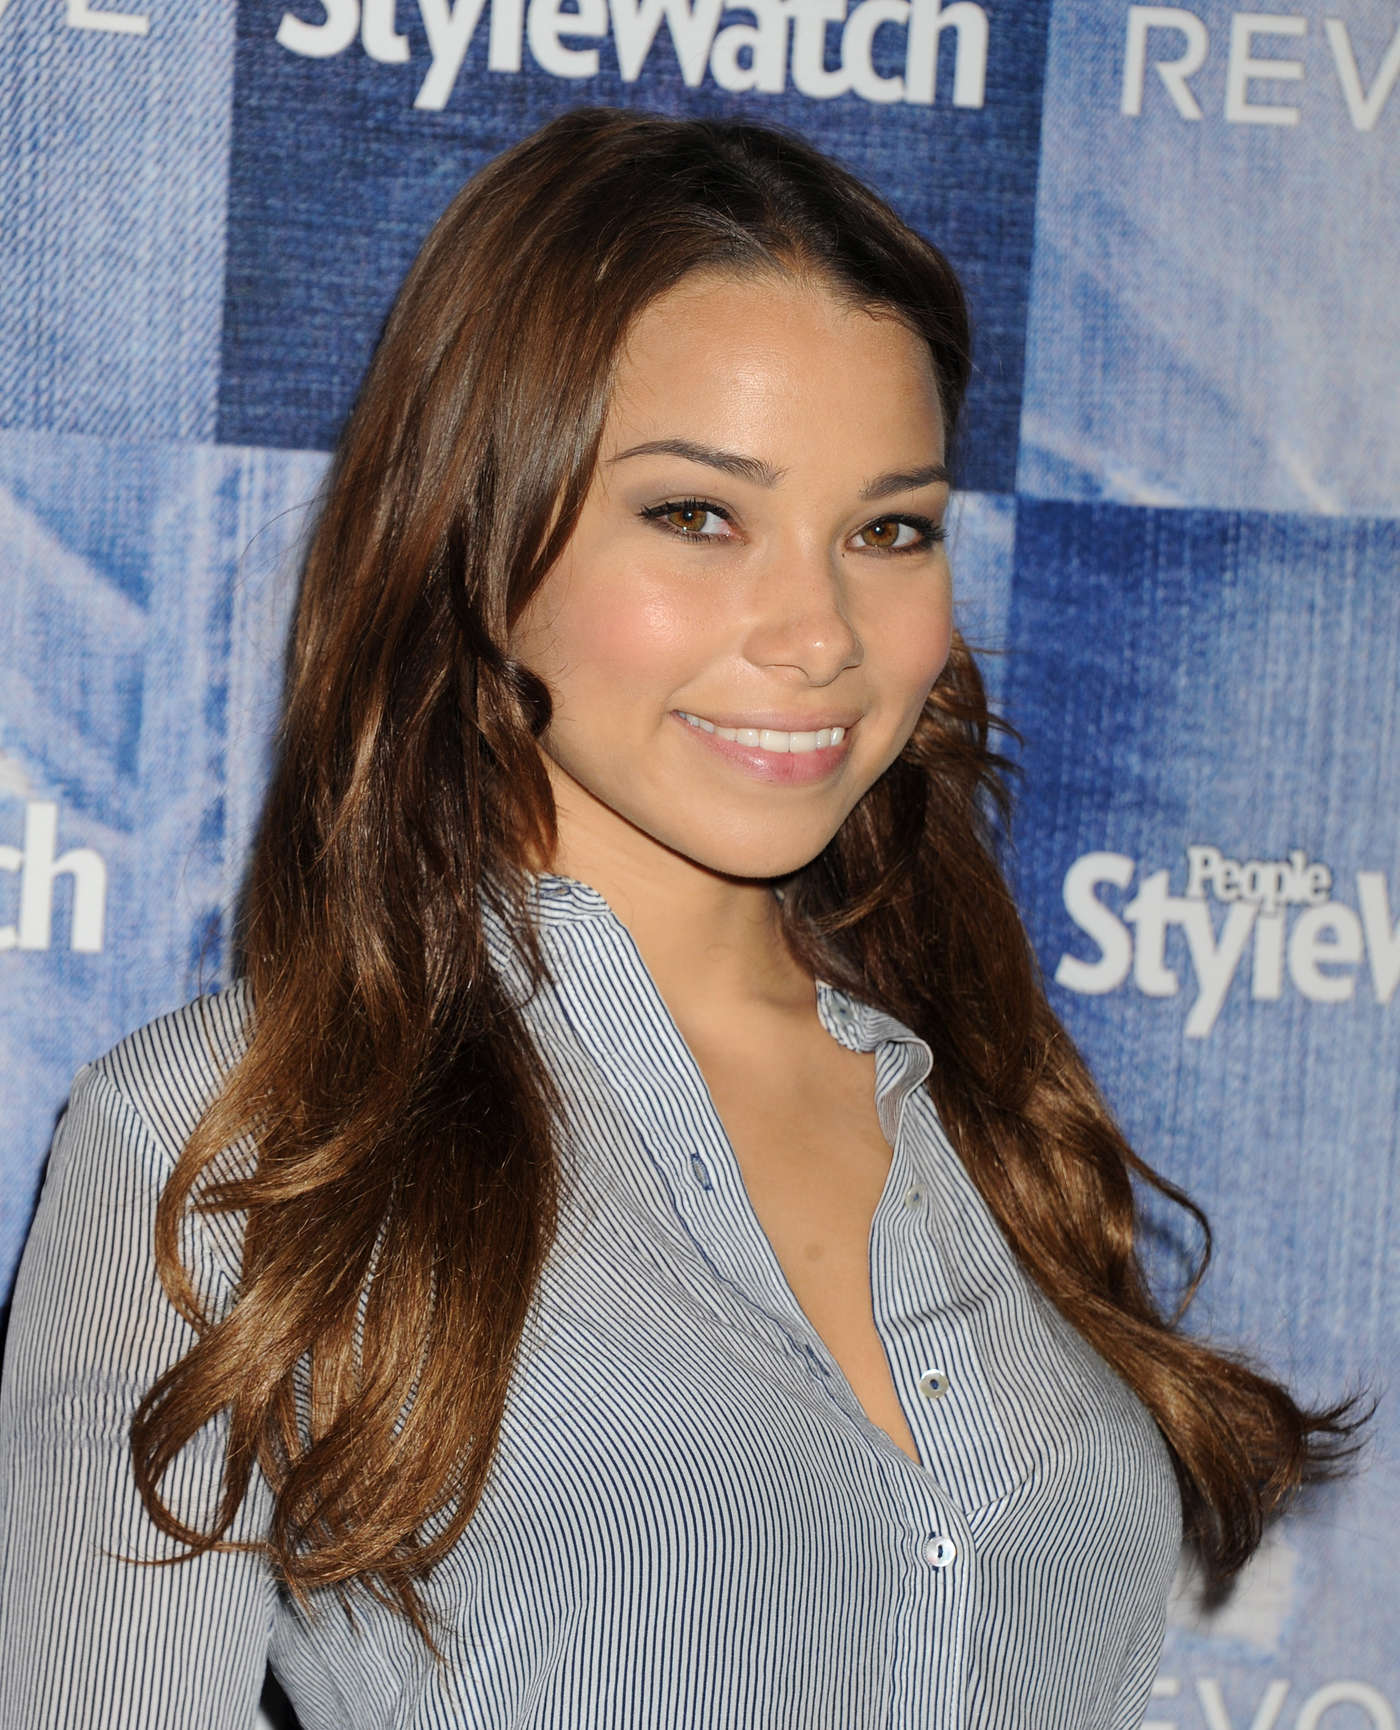 Jessica Parker Kennedy People StyleWatch Annual Denim Party in Los Angeles